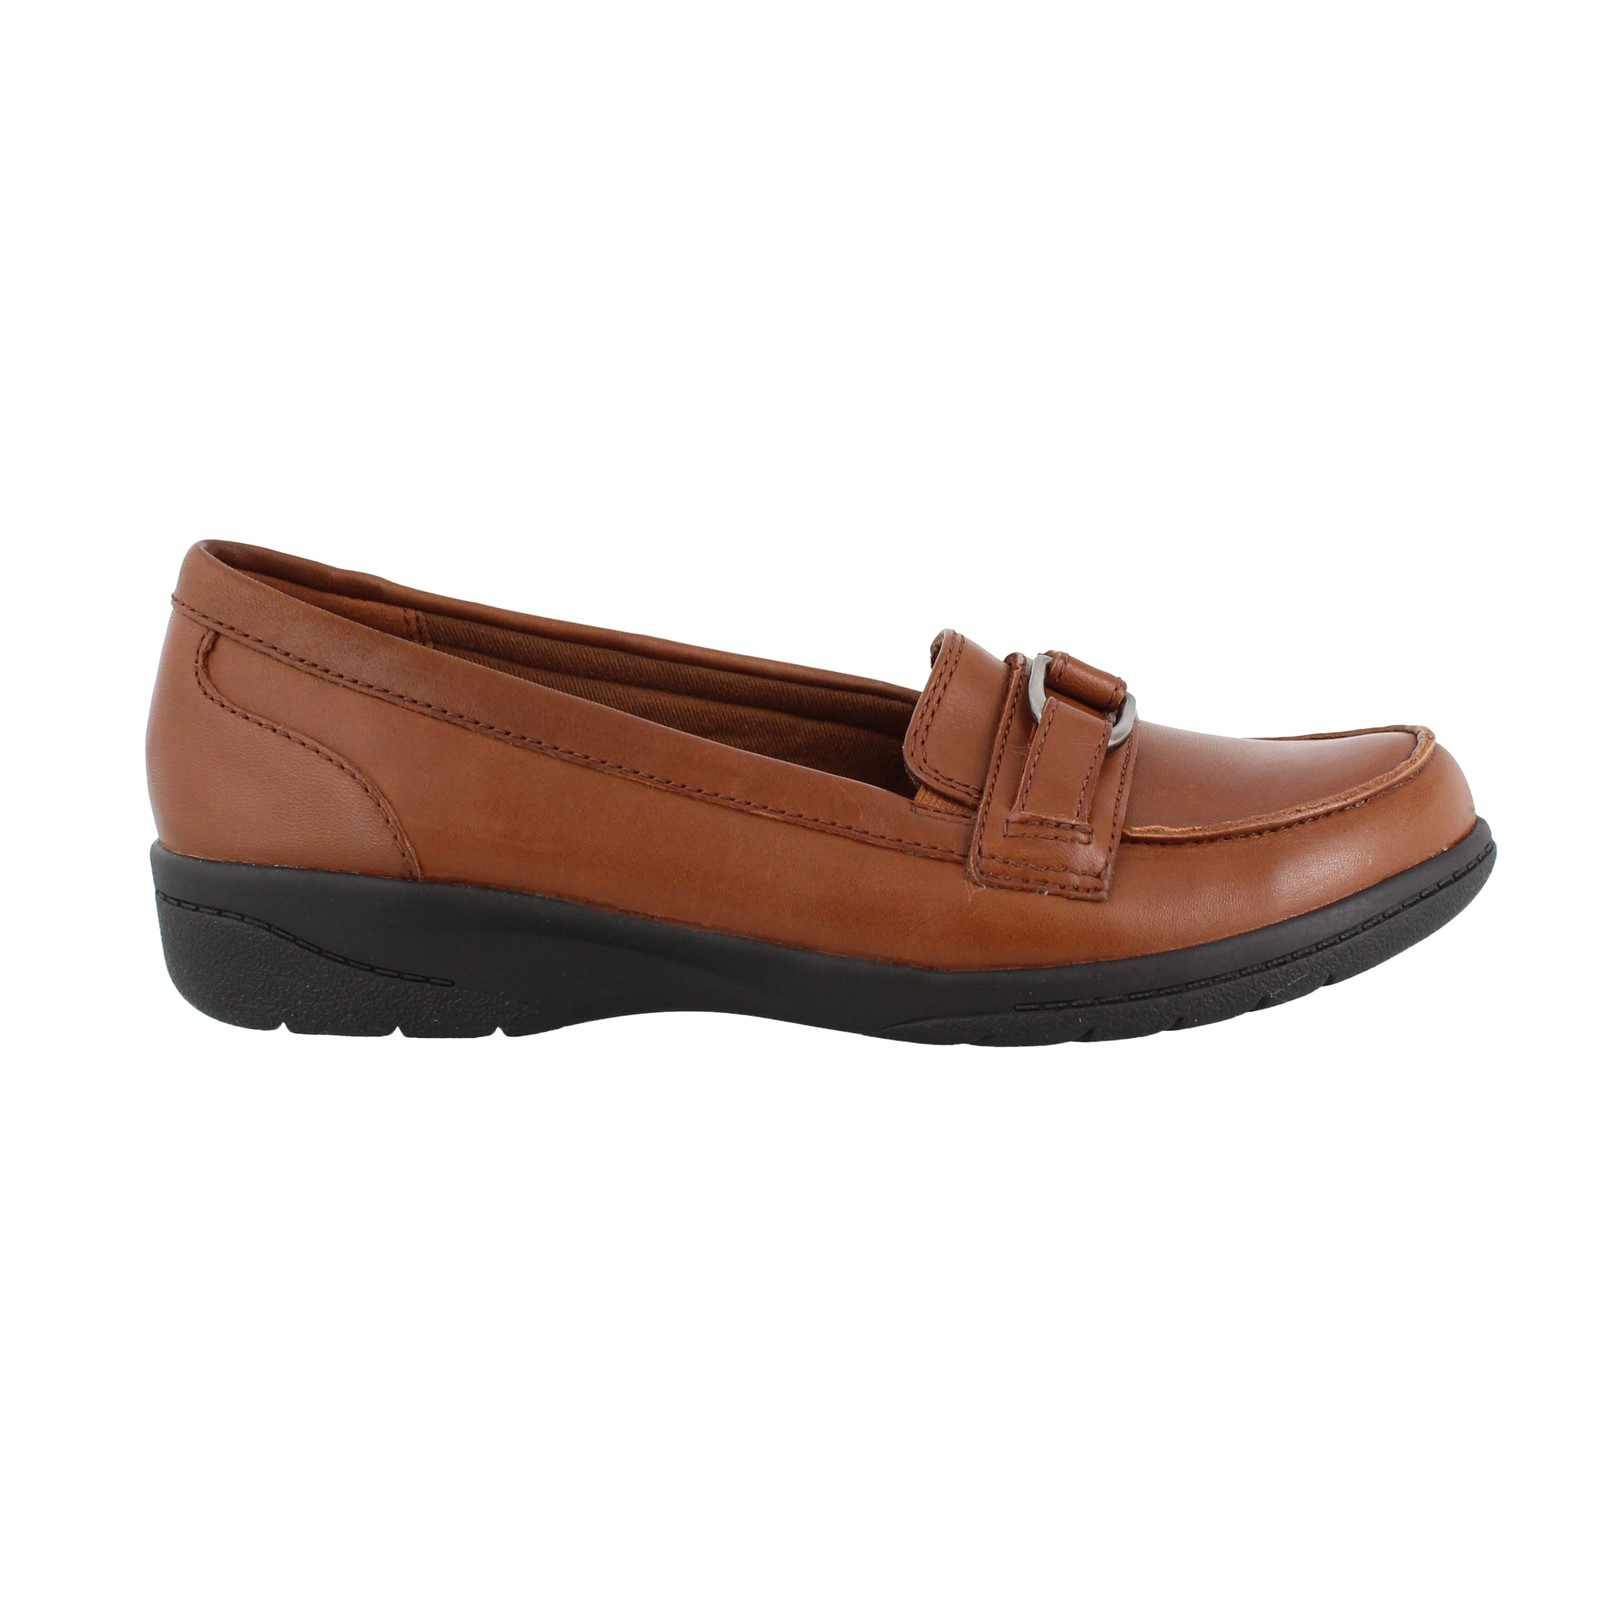 Women's Clarks, Cheyn Marie Slip on Loafers